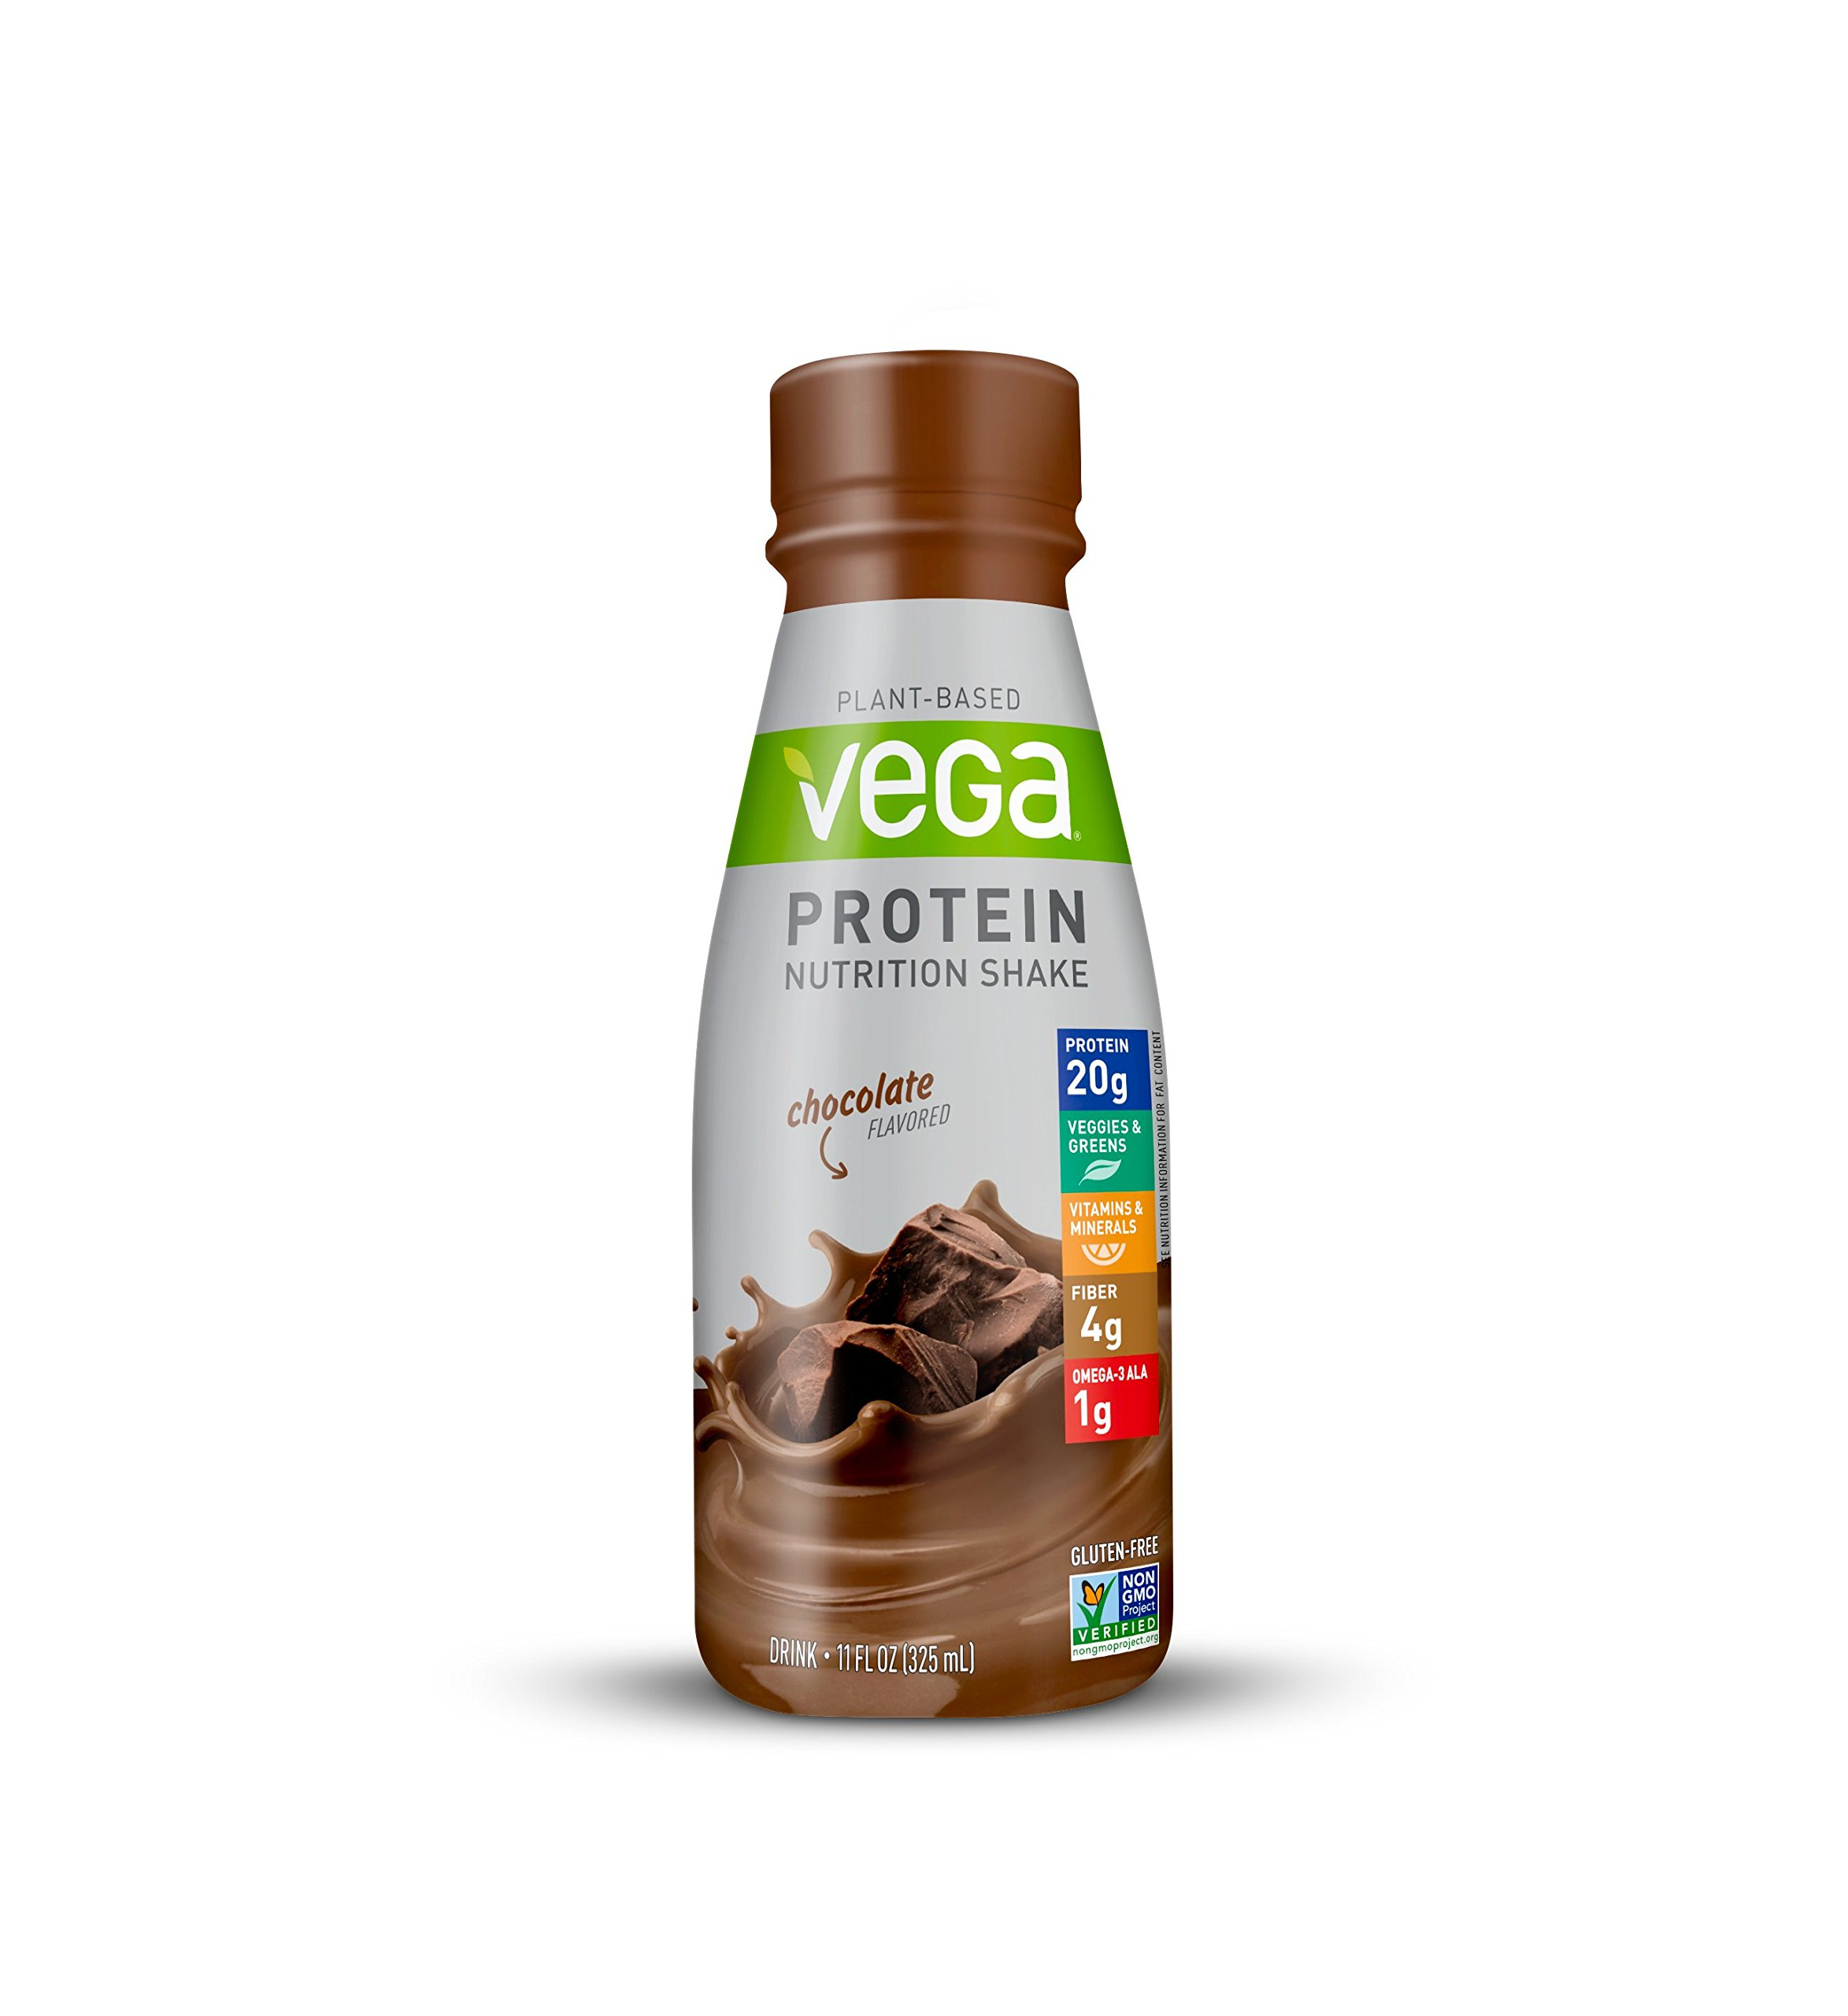 Vega Protein Nutrition Shake, Ready to Drink, Vegan, Gluten Free, Chocolate, 11floz (Pack of 12)